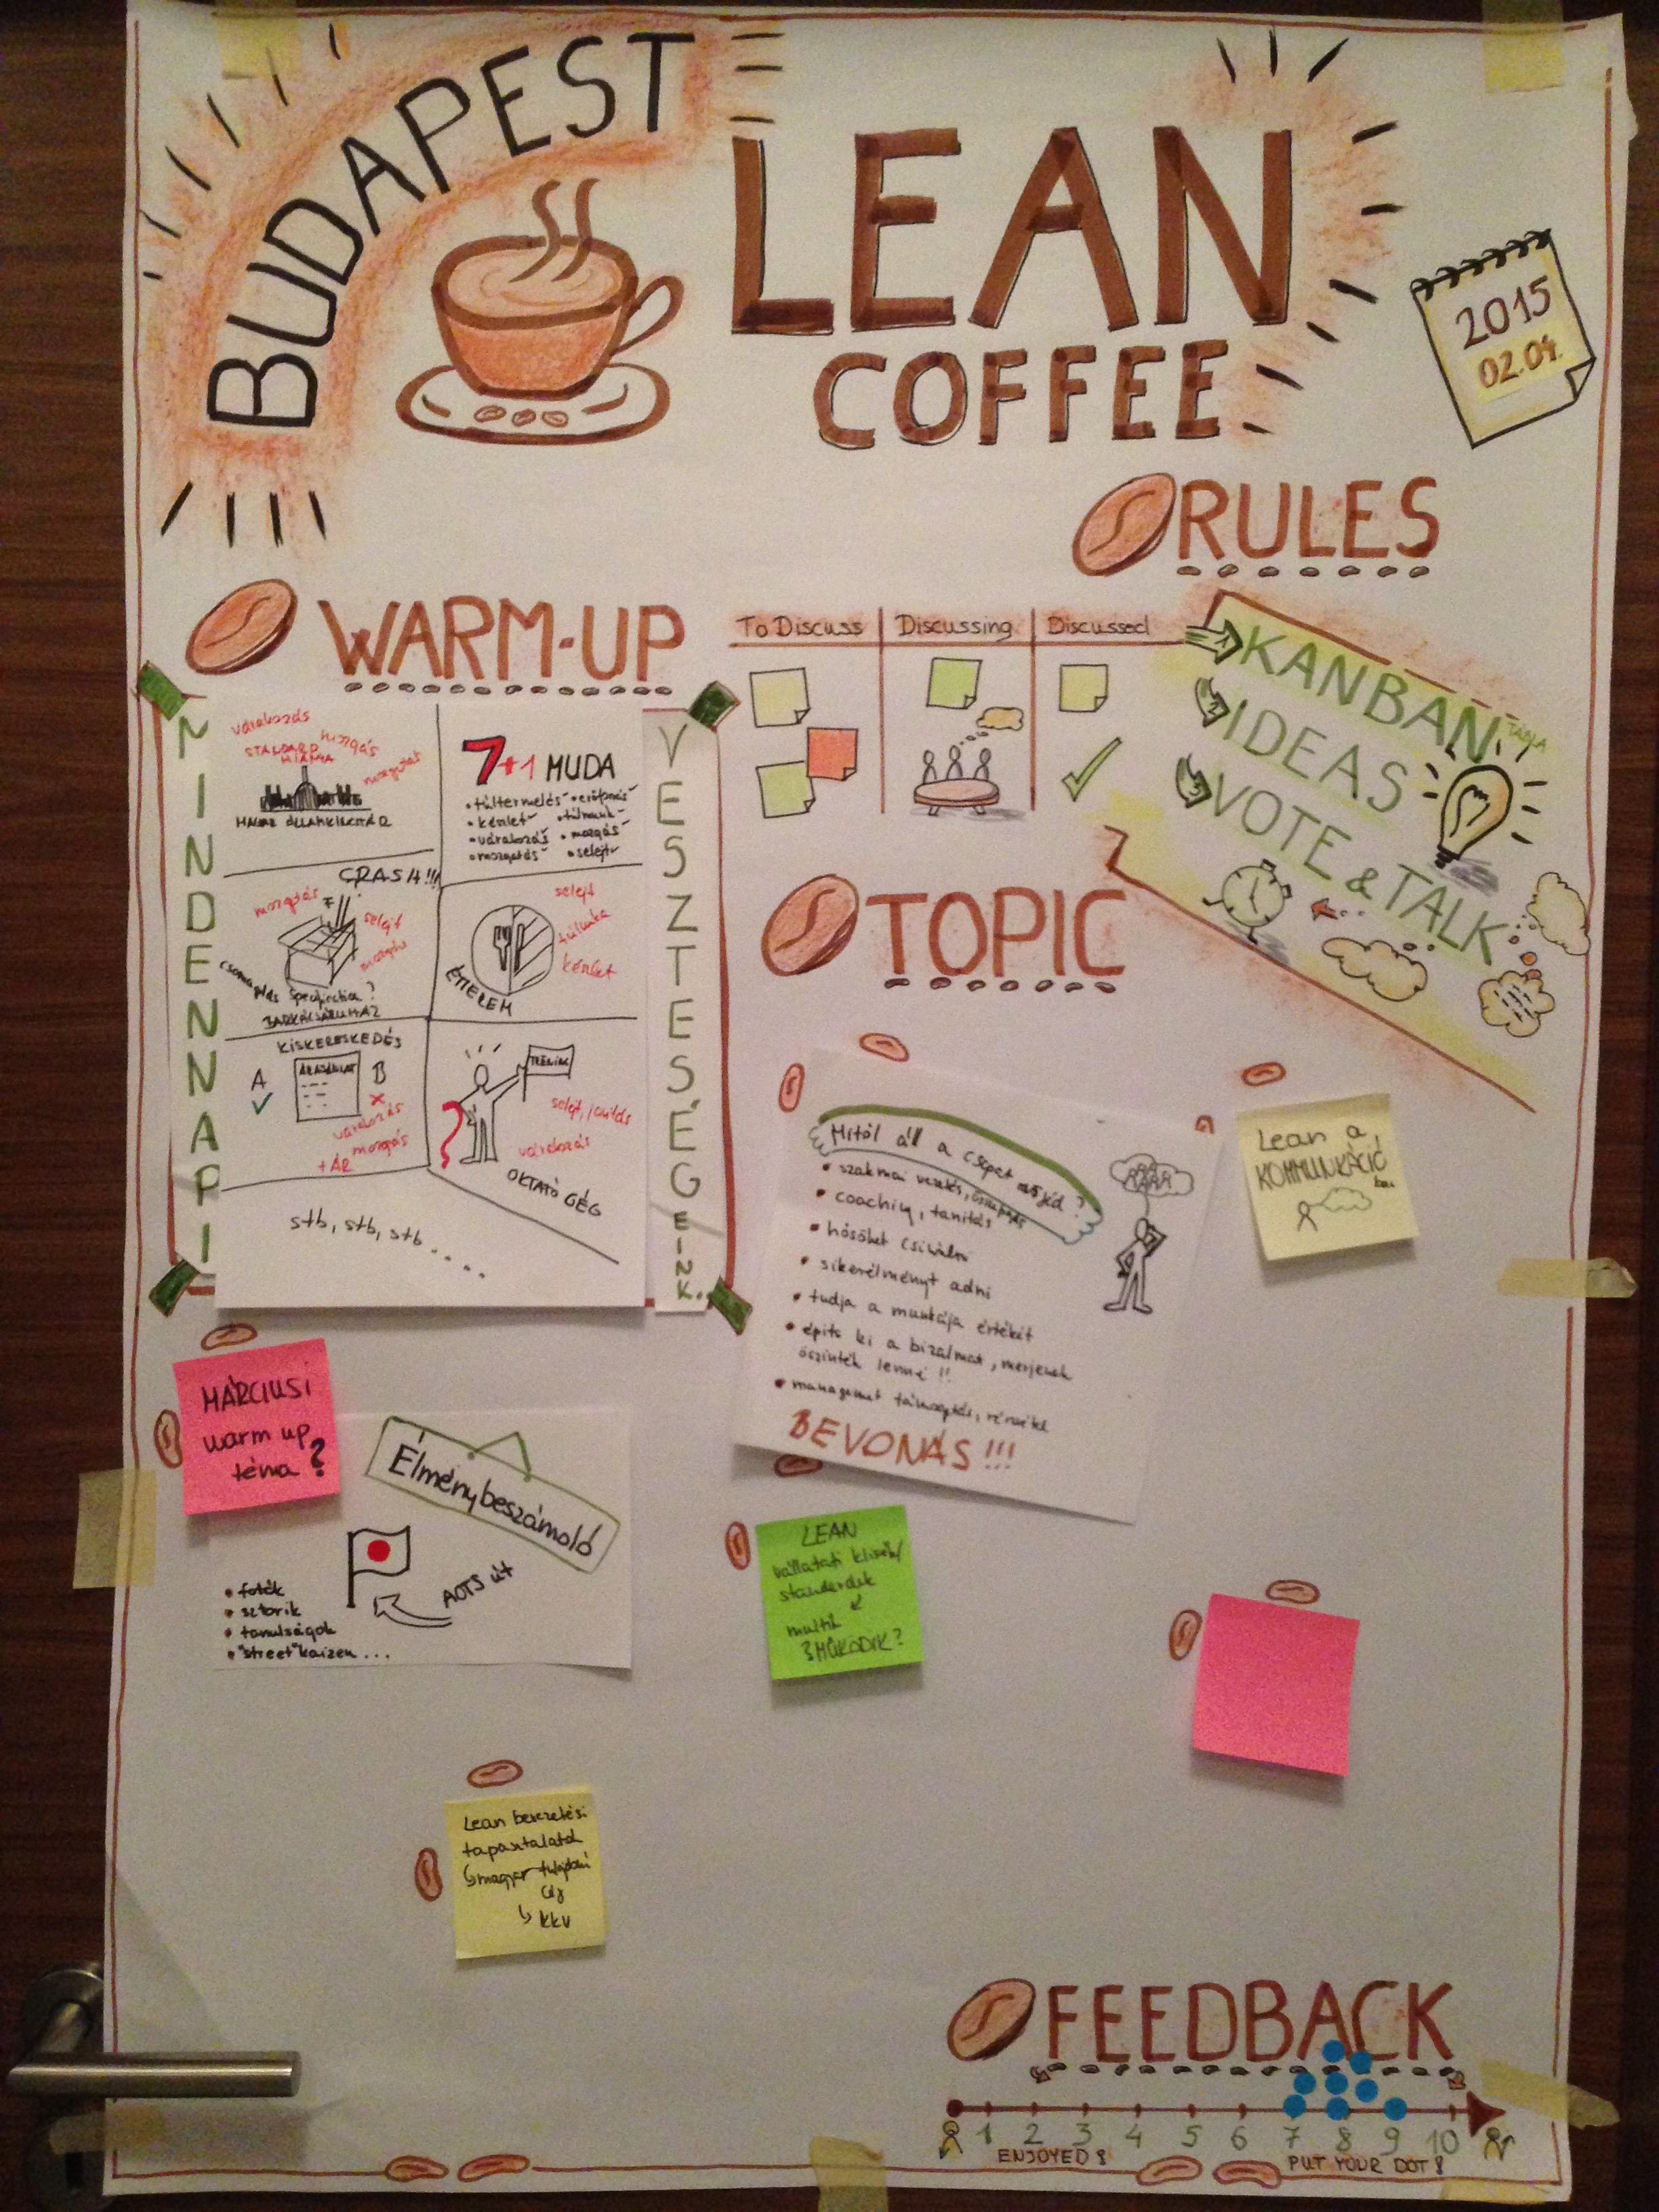 Budapest Lean Coffee_February